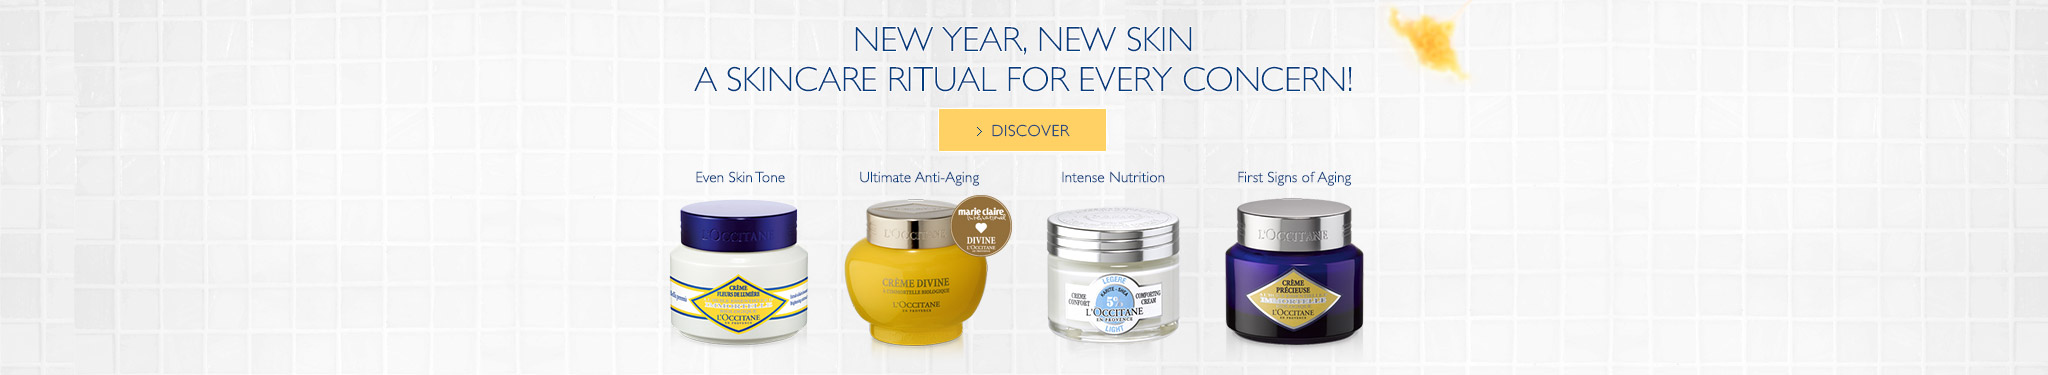 New Year, New Skin - A skincare ritual for every concern!